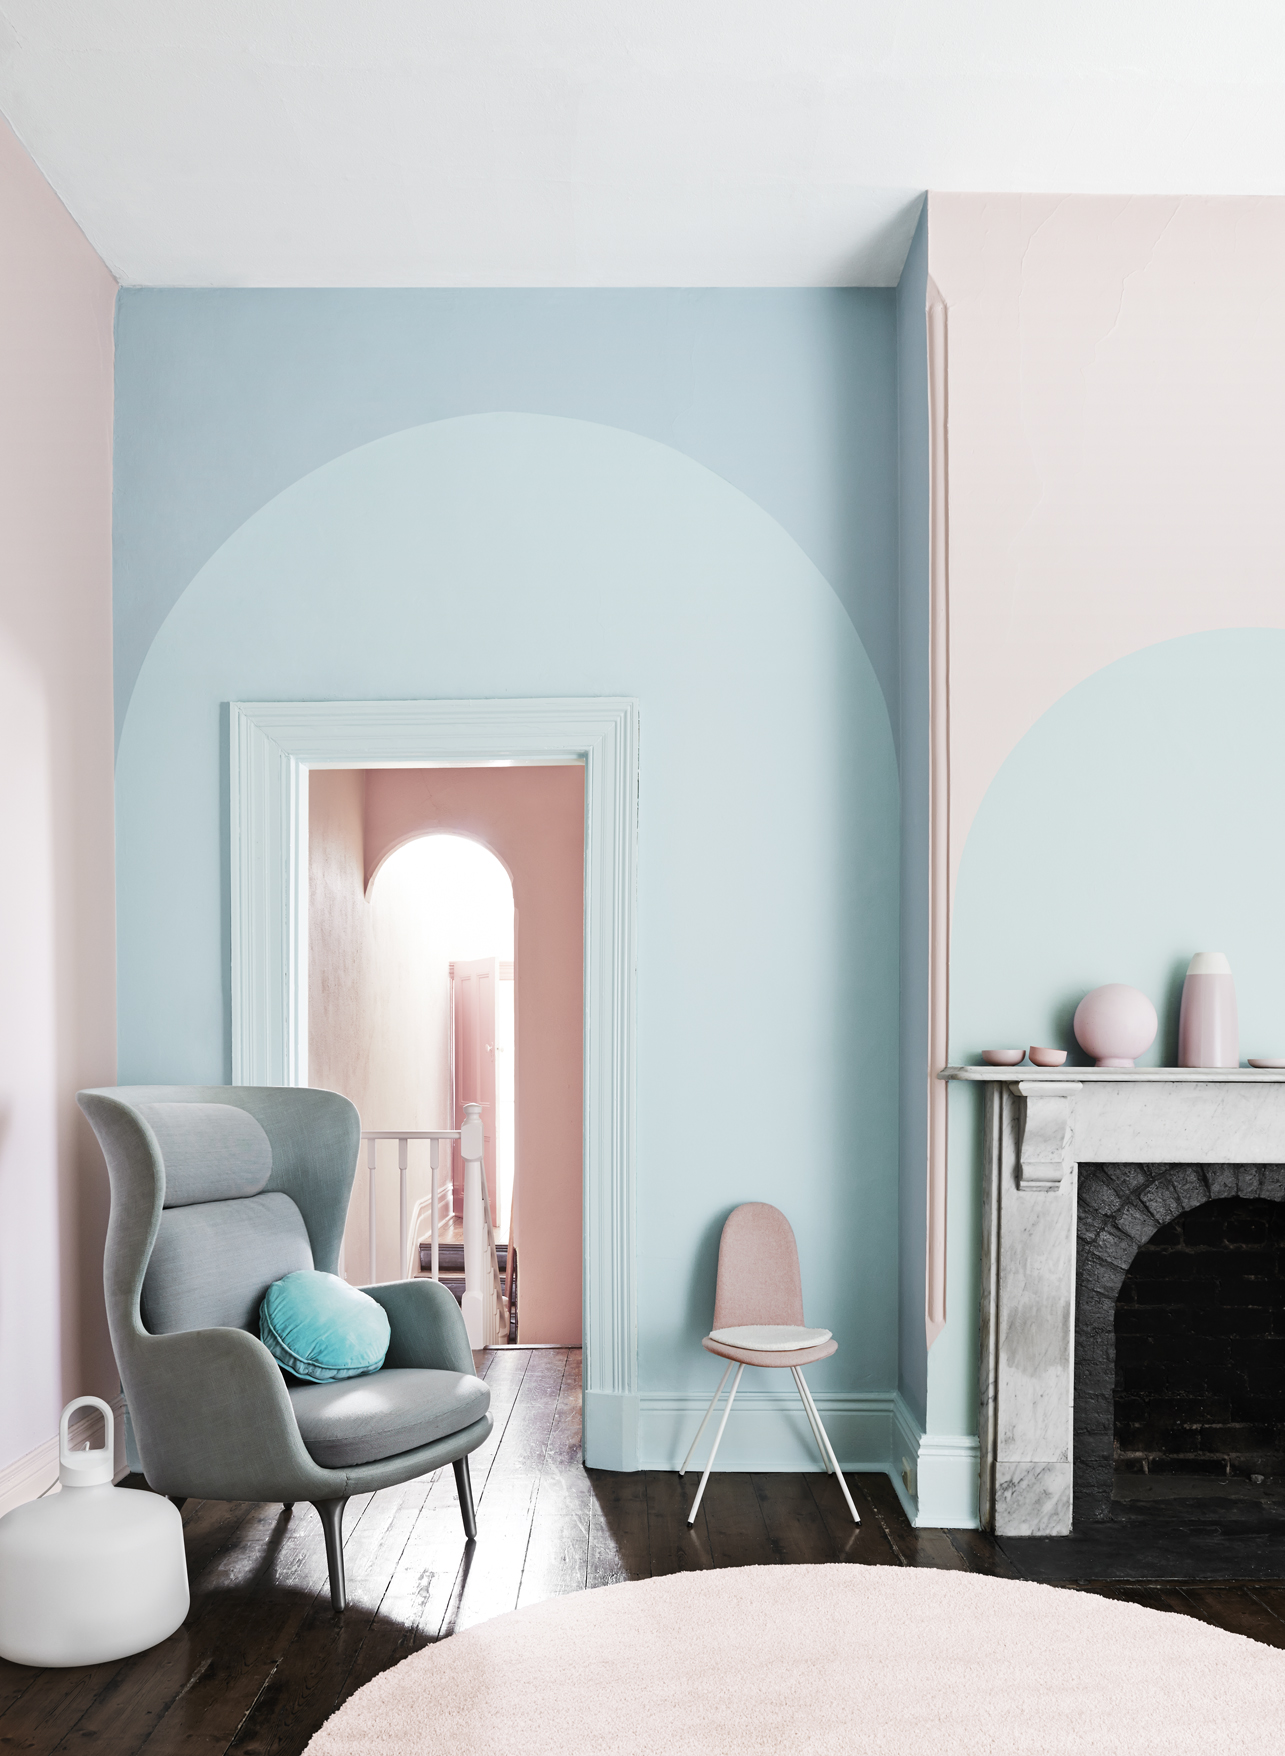 Styled by Edwards Moore for Dulux